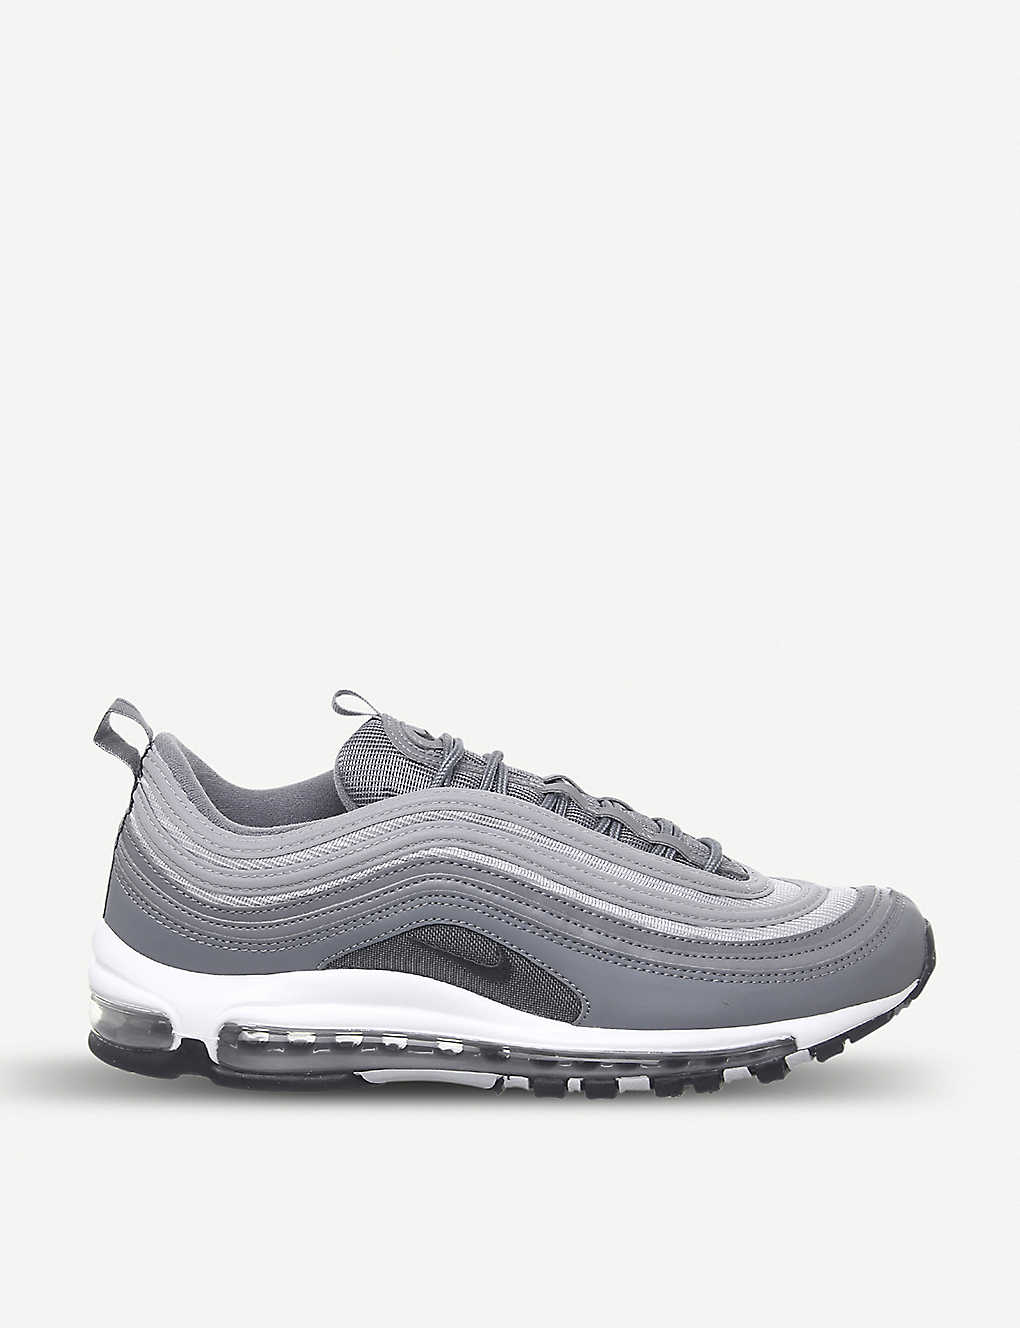 buy online 1b74b 52c02 Air Max 97 leather trainers - Cool grey wolf grey ...